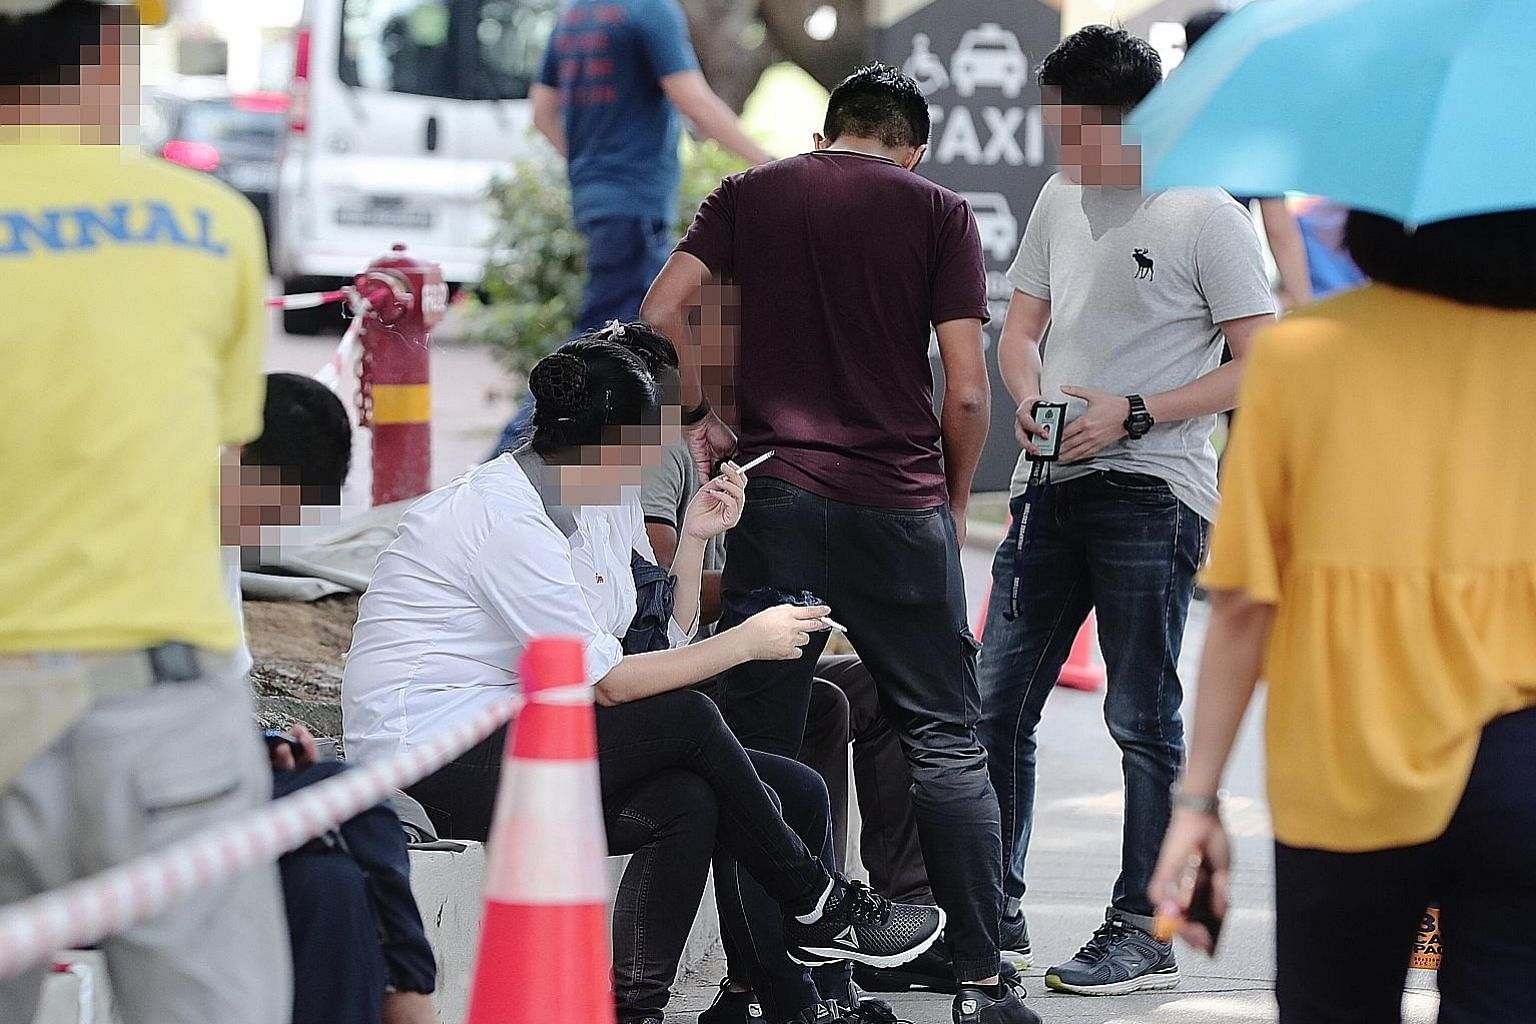 Singapore Customs officers checking whether people were smoking duty-unpaid cigarettes in Tampines Central. Offenders caught in the three-day operation were issued composition sums ranging from $500 to $1,200.